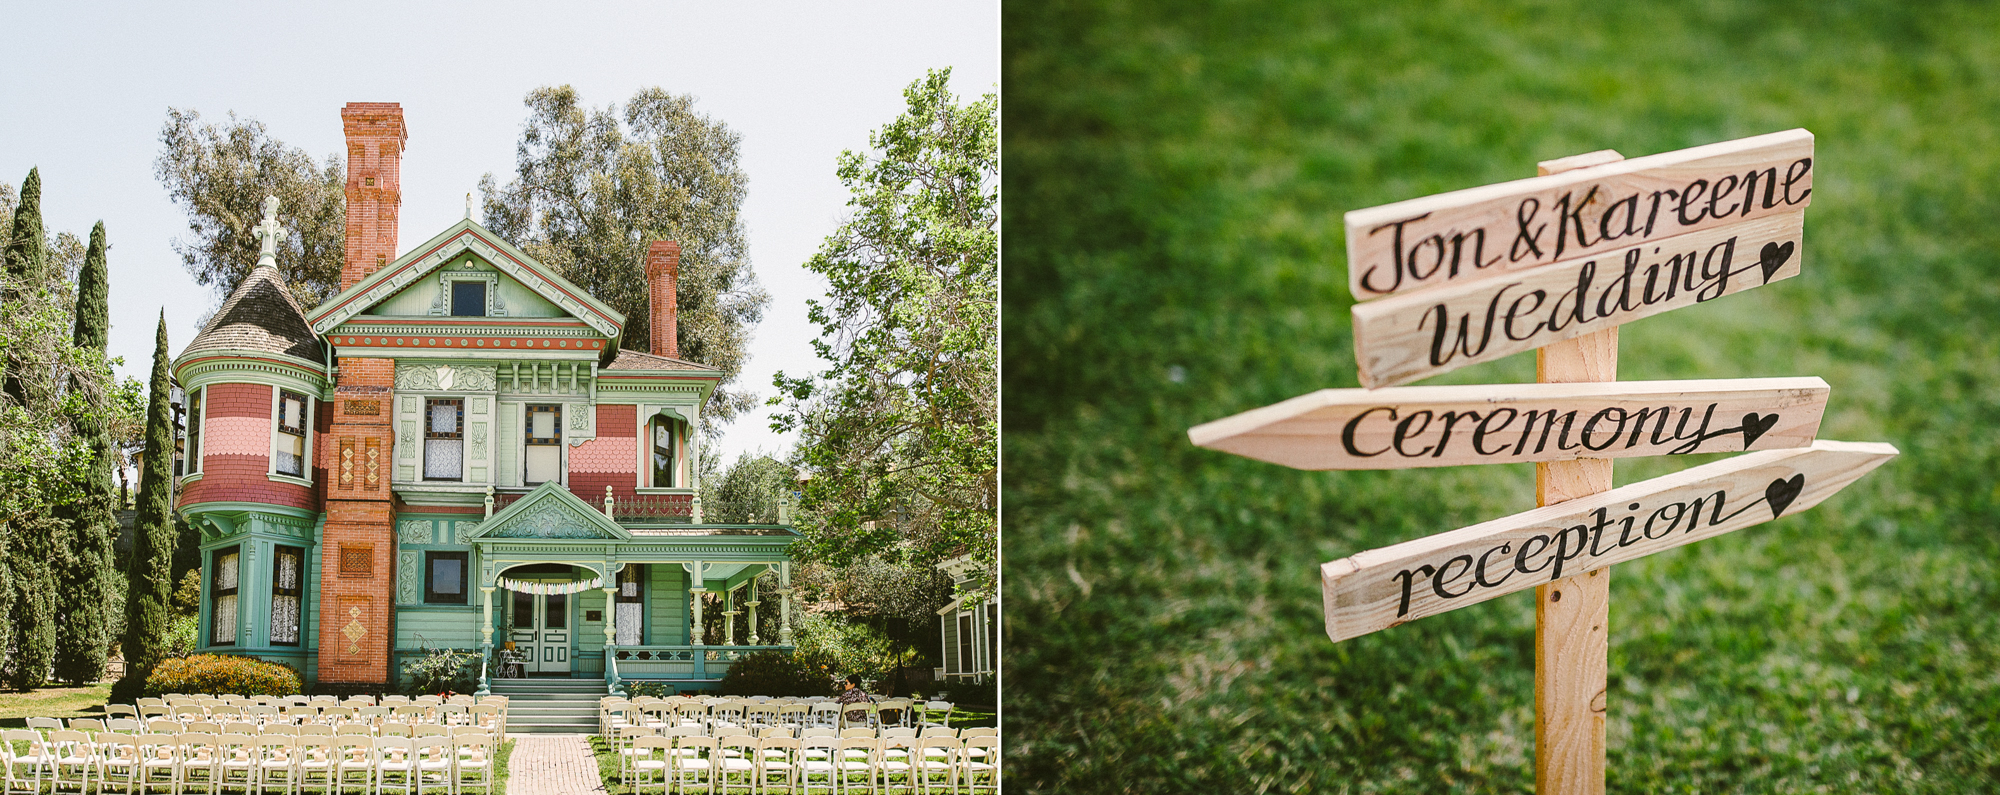 Isaiah & Taylor Photography - Los Angeles - Destination Wedding Photographers - Heritage Square Museum -55.jpg